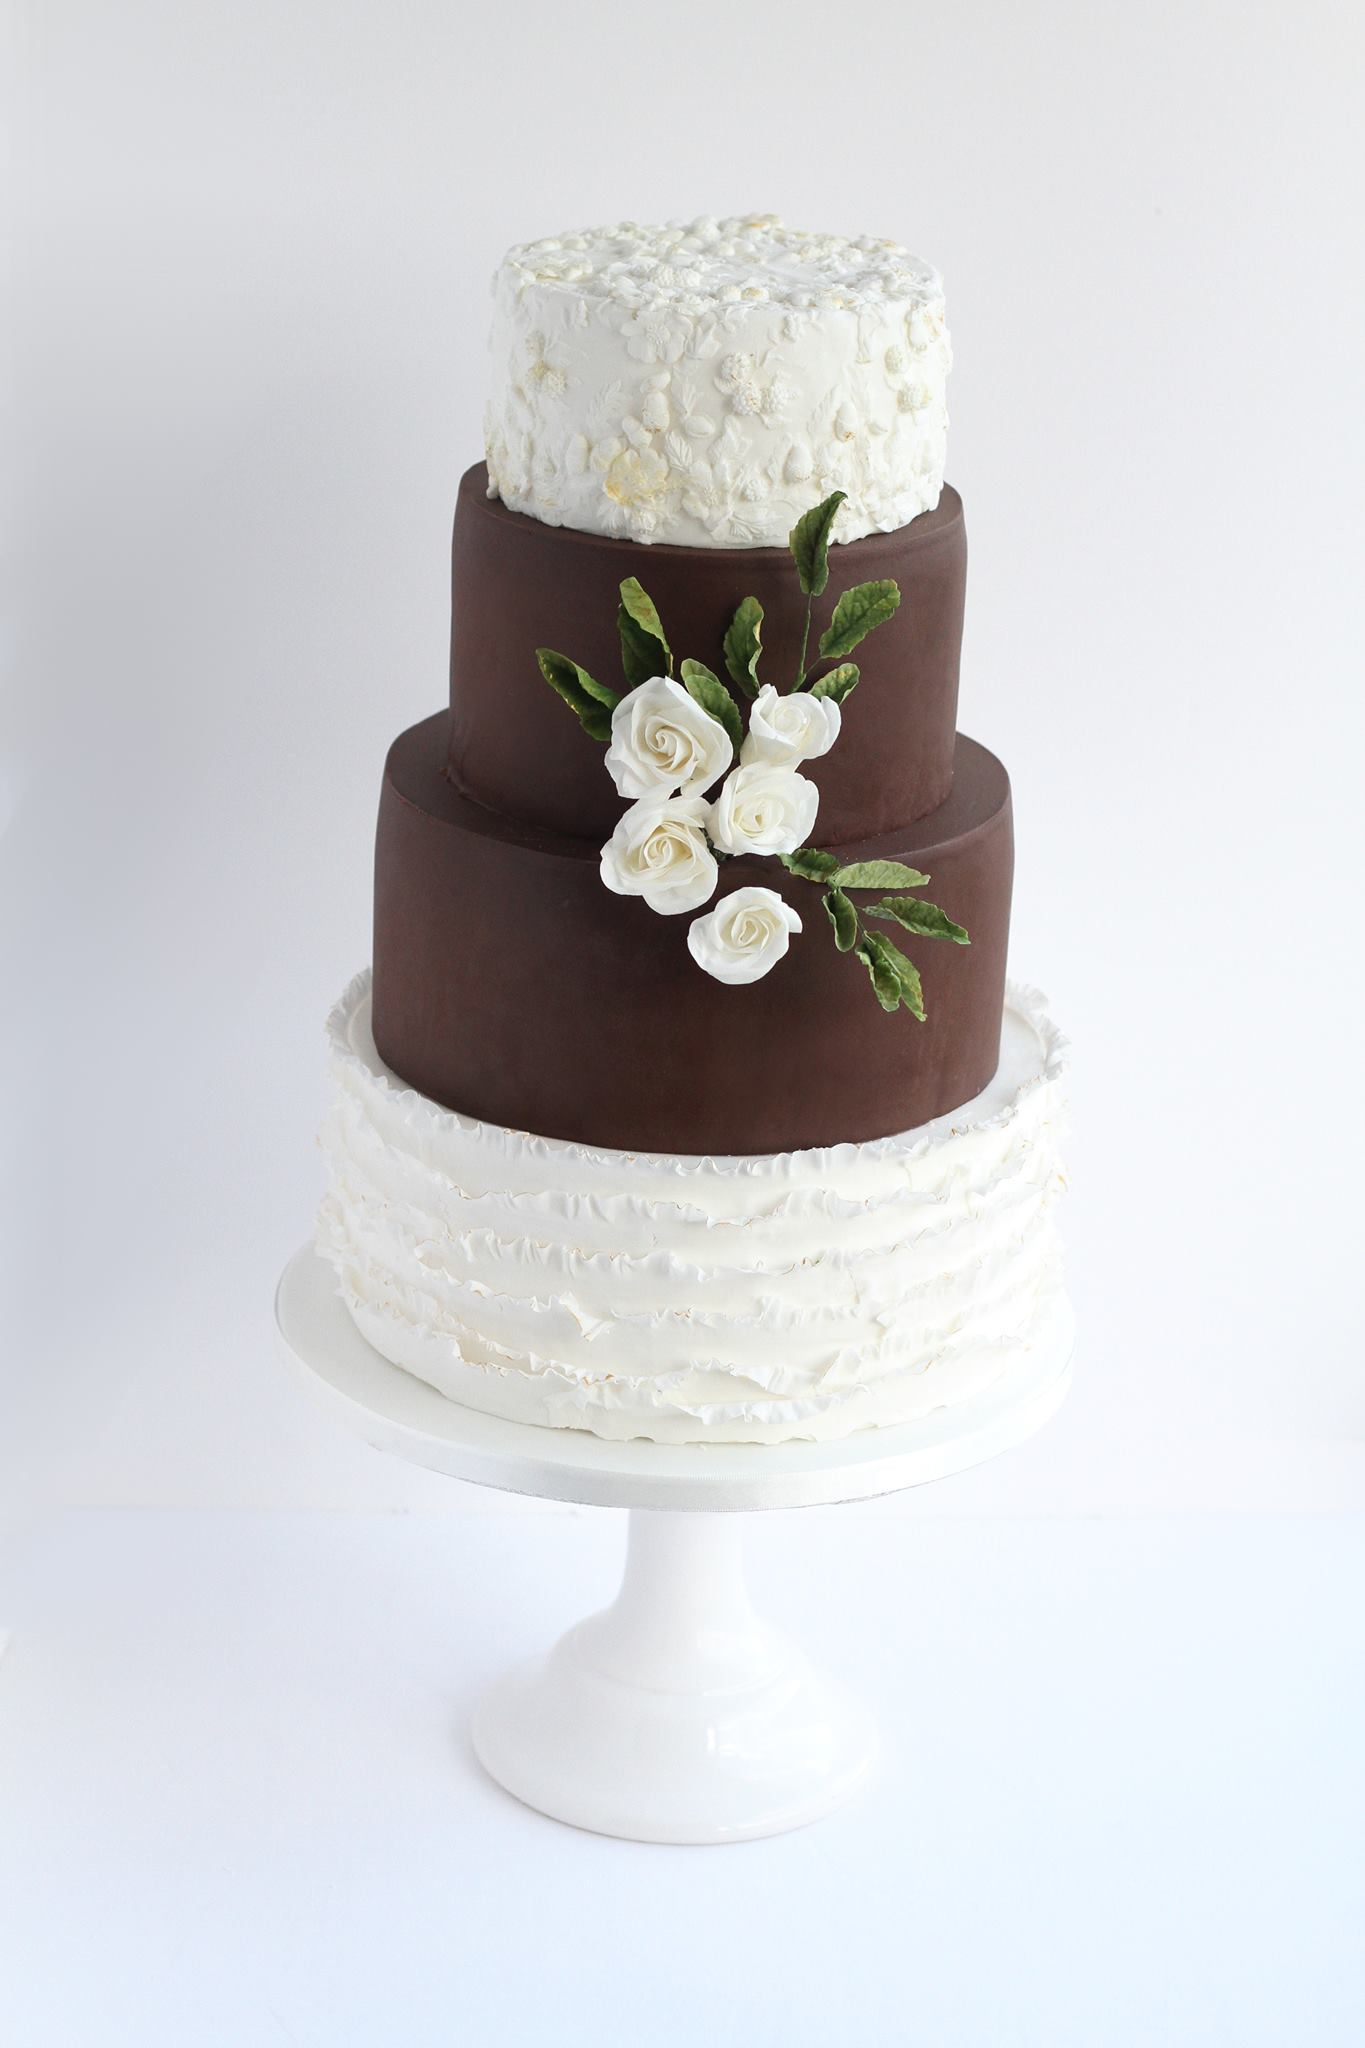 Brown and White fondant ruffle wedding cake